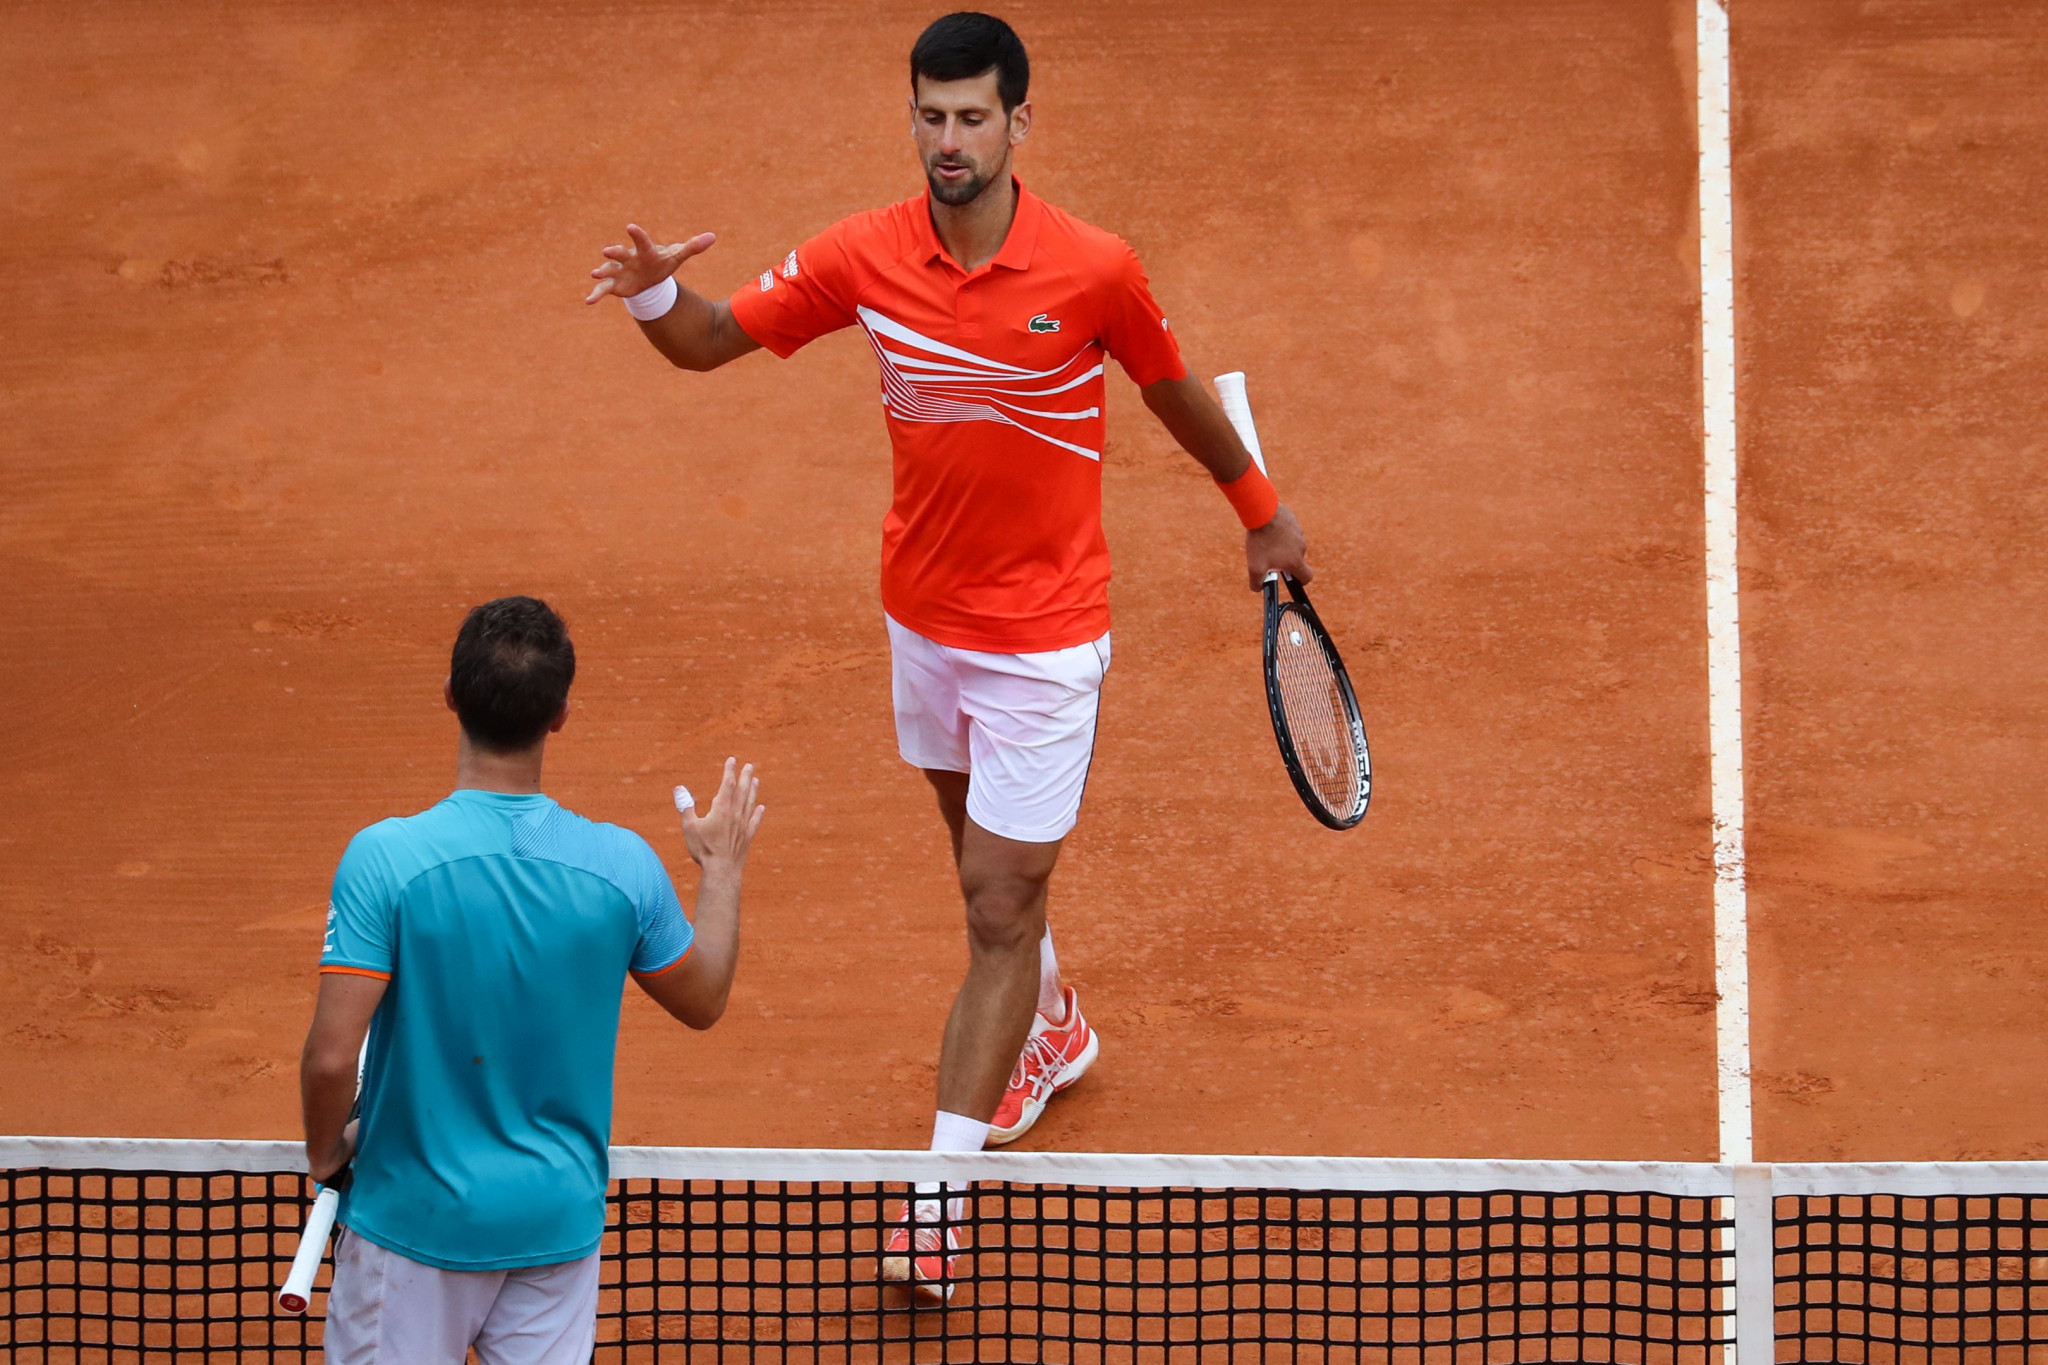 Novak Djokovic advancet to the third round of the Monte Carlo Masters event ©Getty Images